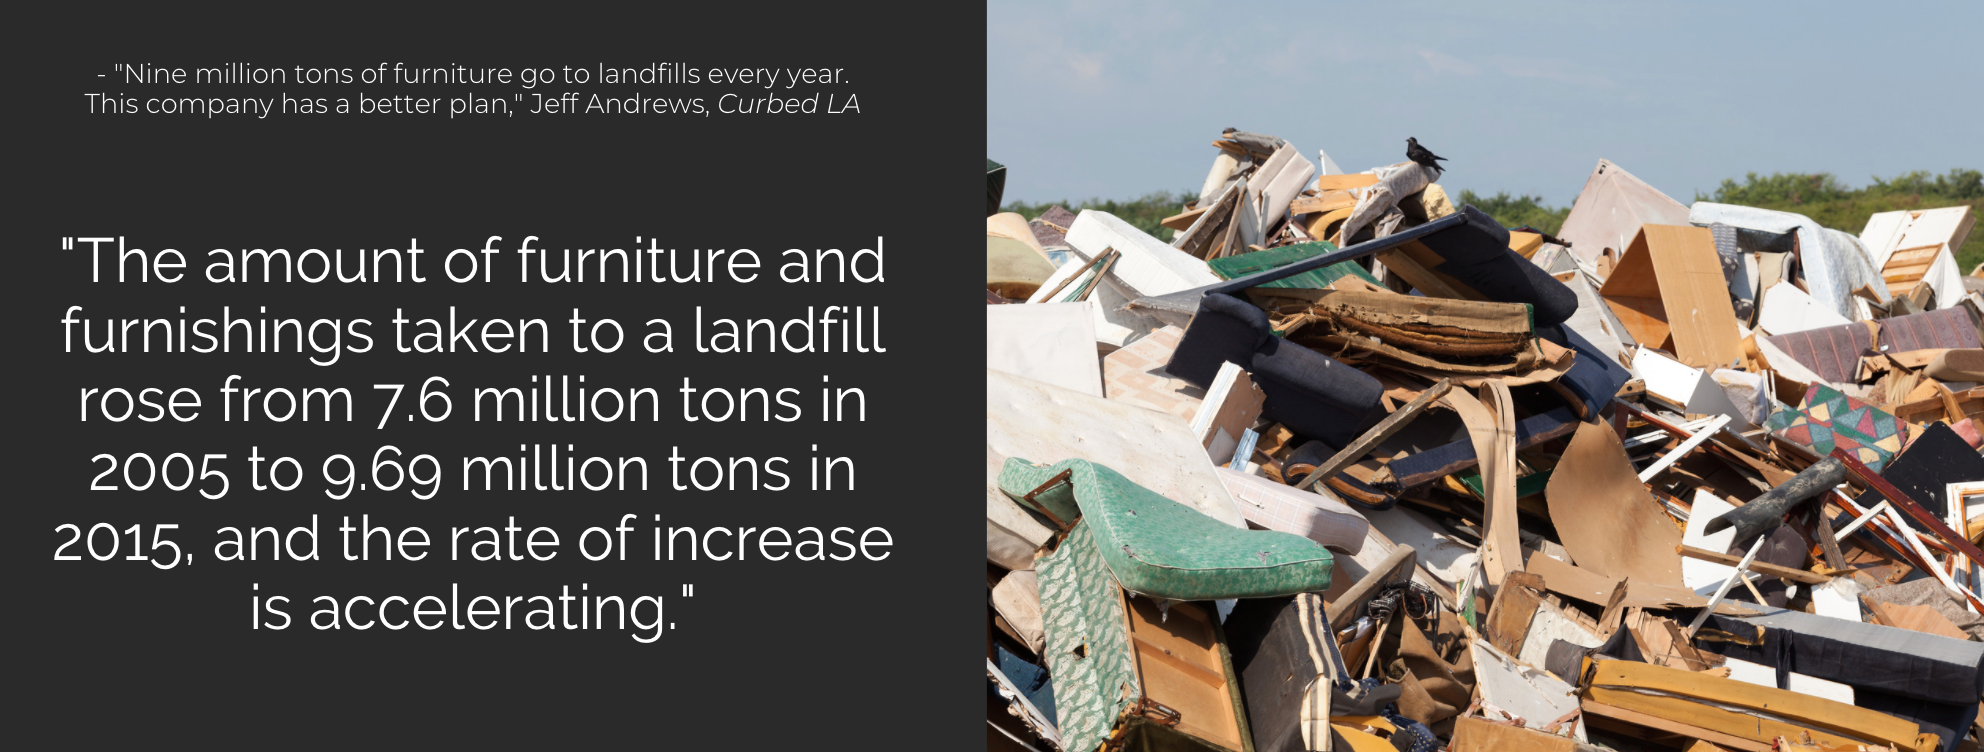 The US contributes over 9 million tons of furniture to landfills each year